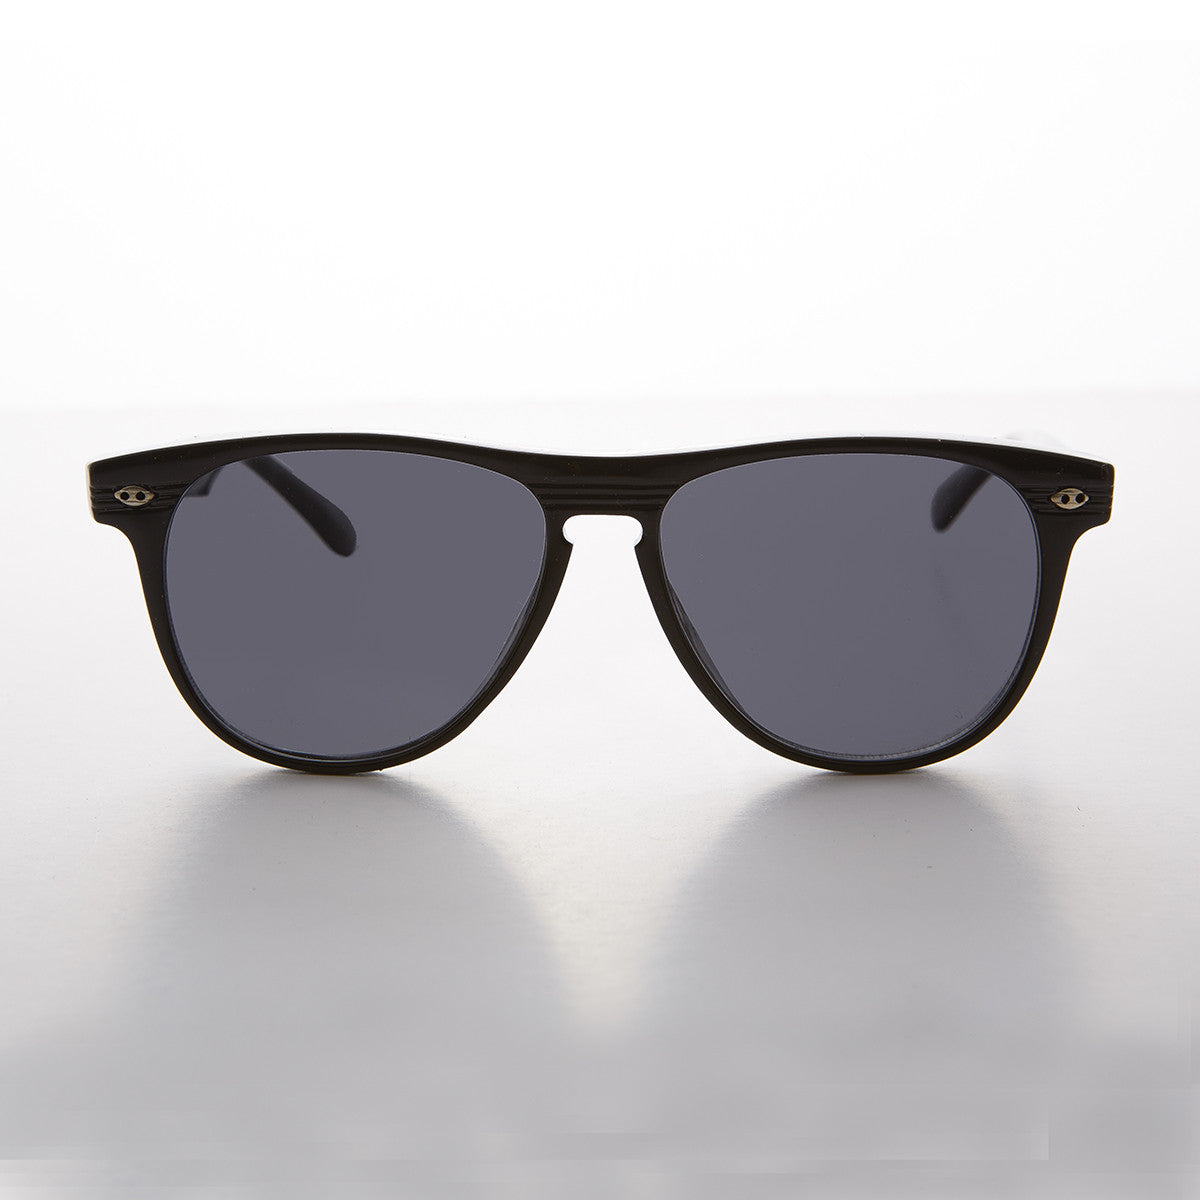 sporty racer classic style men's vintage sunglass